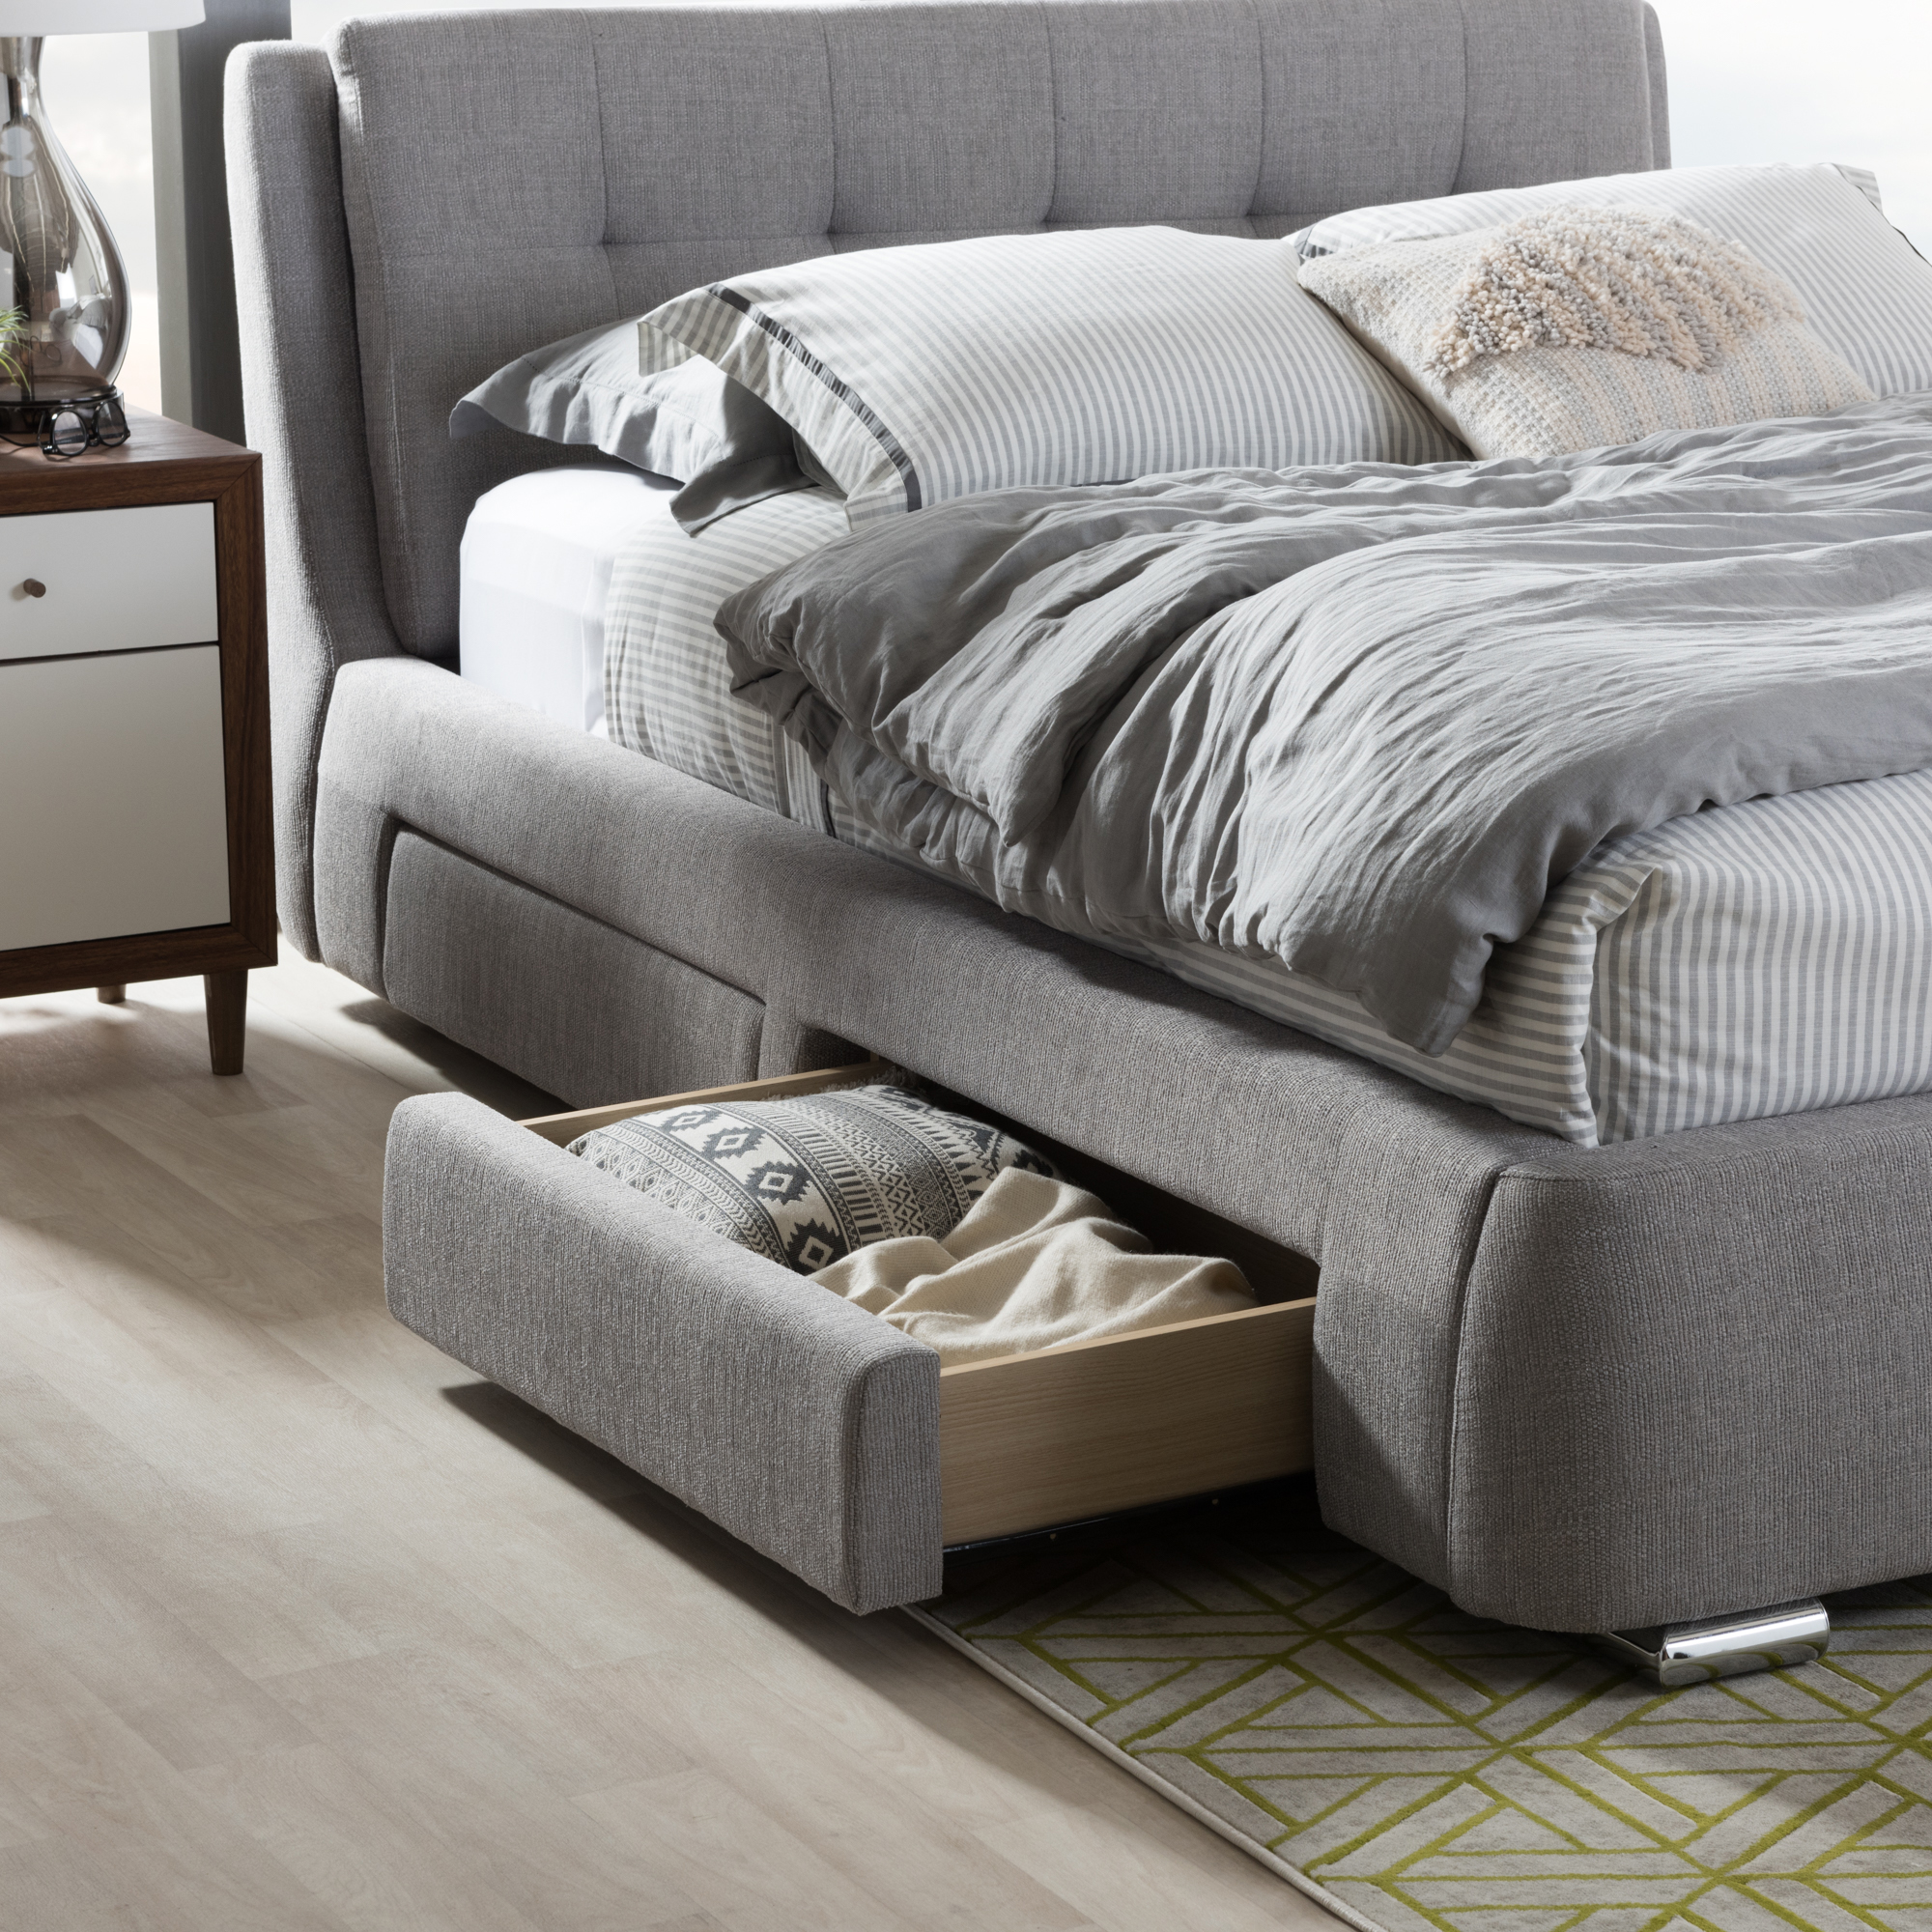 Platform Bed With Drawers Queen Size Ultimate Bed Platform Beds With